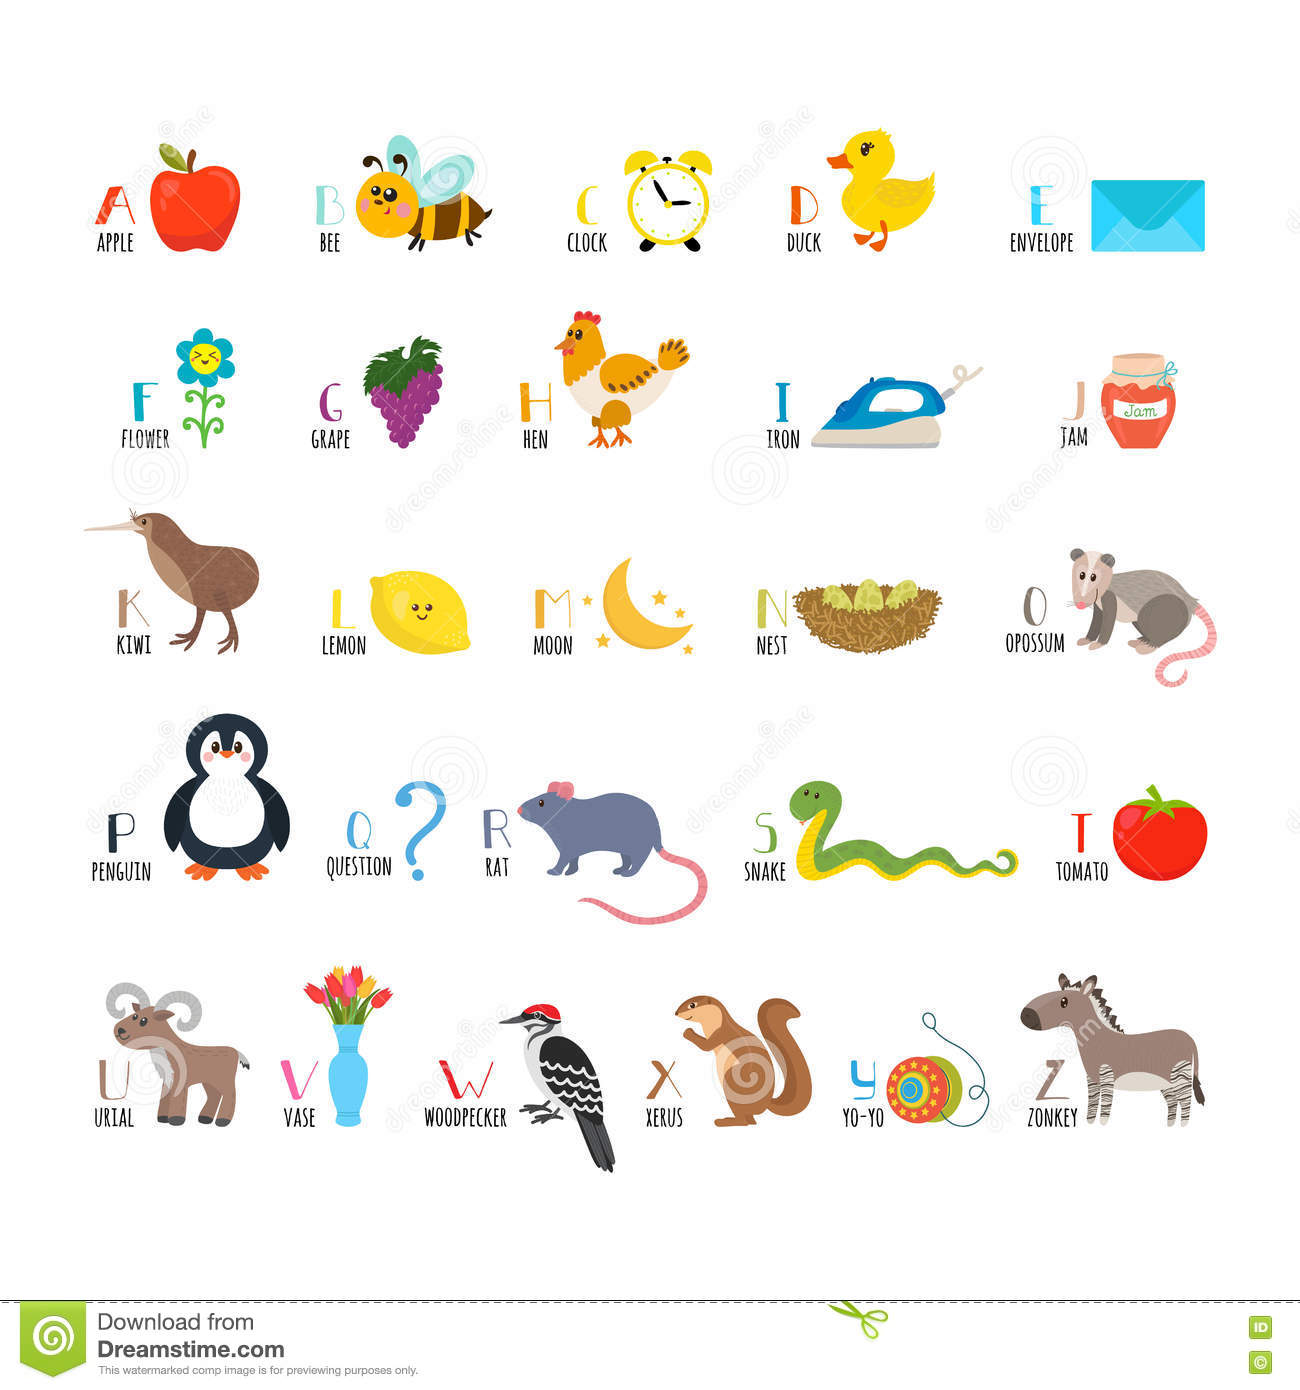 abc apprenez s 39 afficher alphabet d 39 enfants avec les animaux mignons de bande dessin e. Black Bedroom Furniture Sets. Home Design Ideas